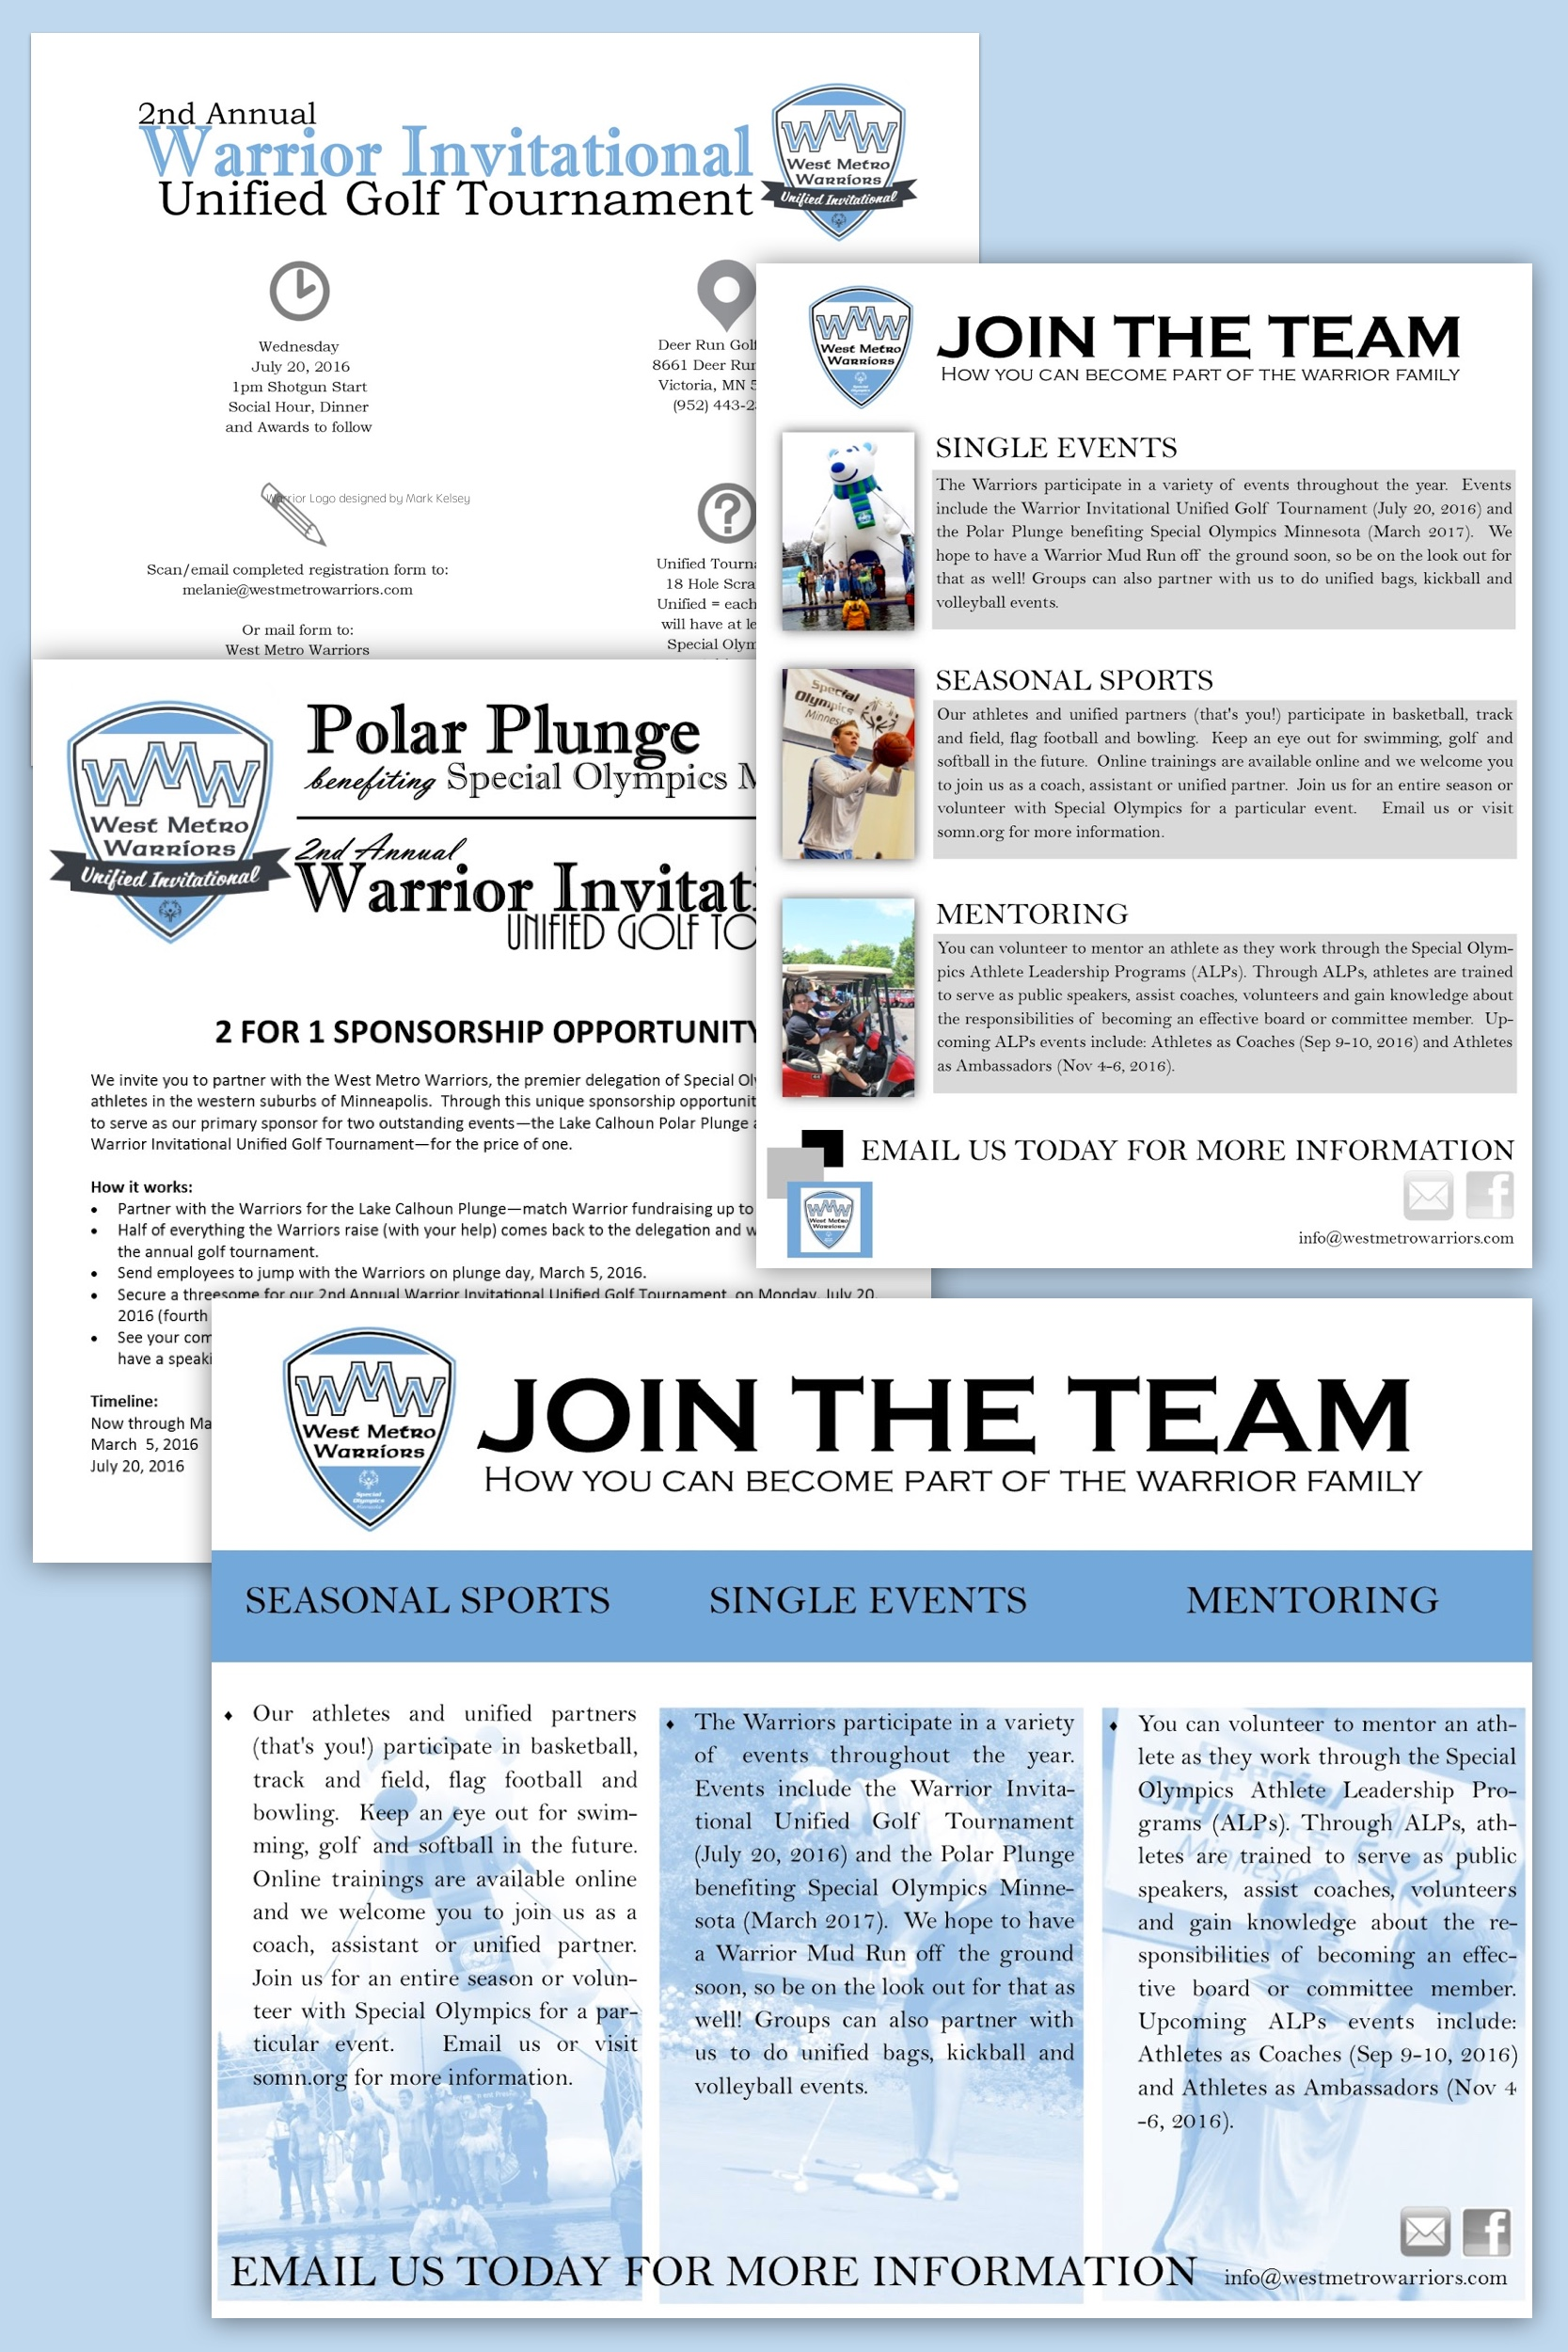 WMW Promotional Material & Golf Tournament